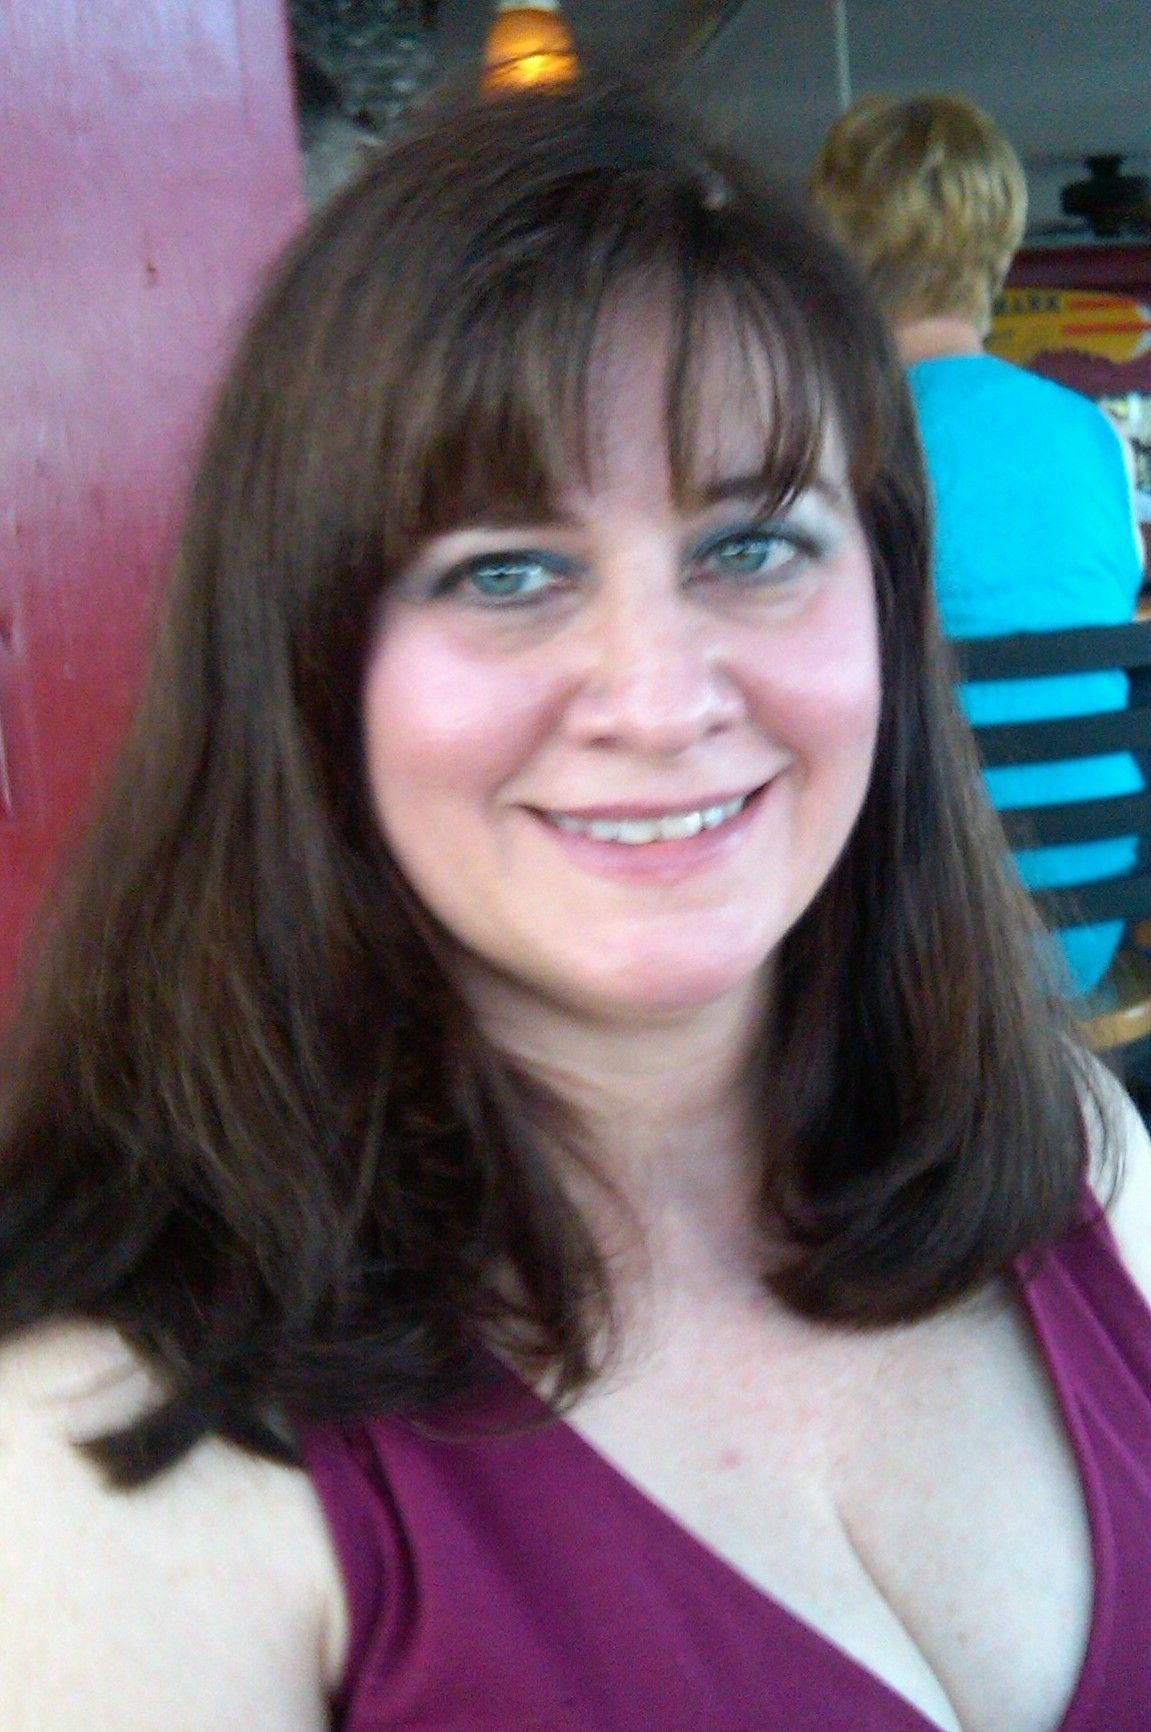 Single women over 40 in okla for dating with pictures